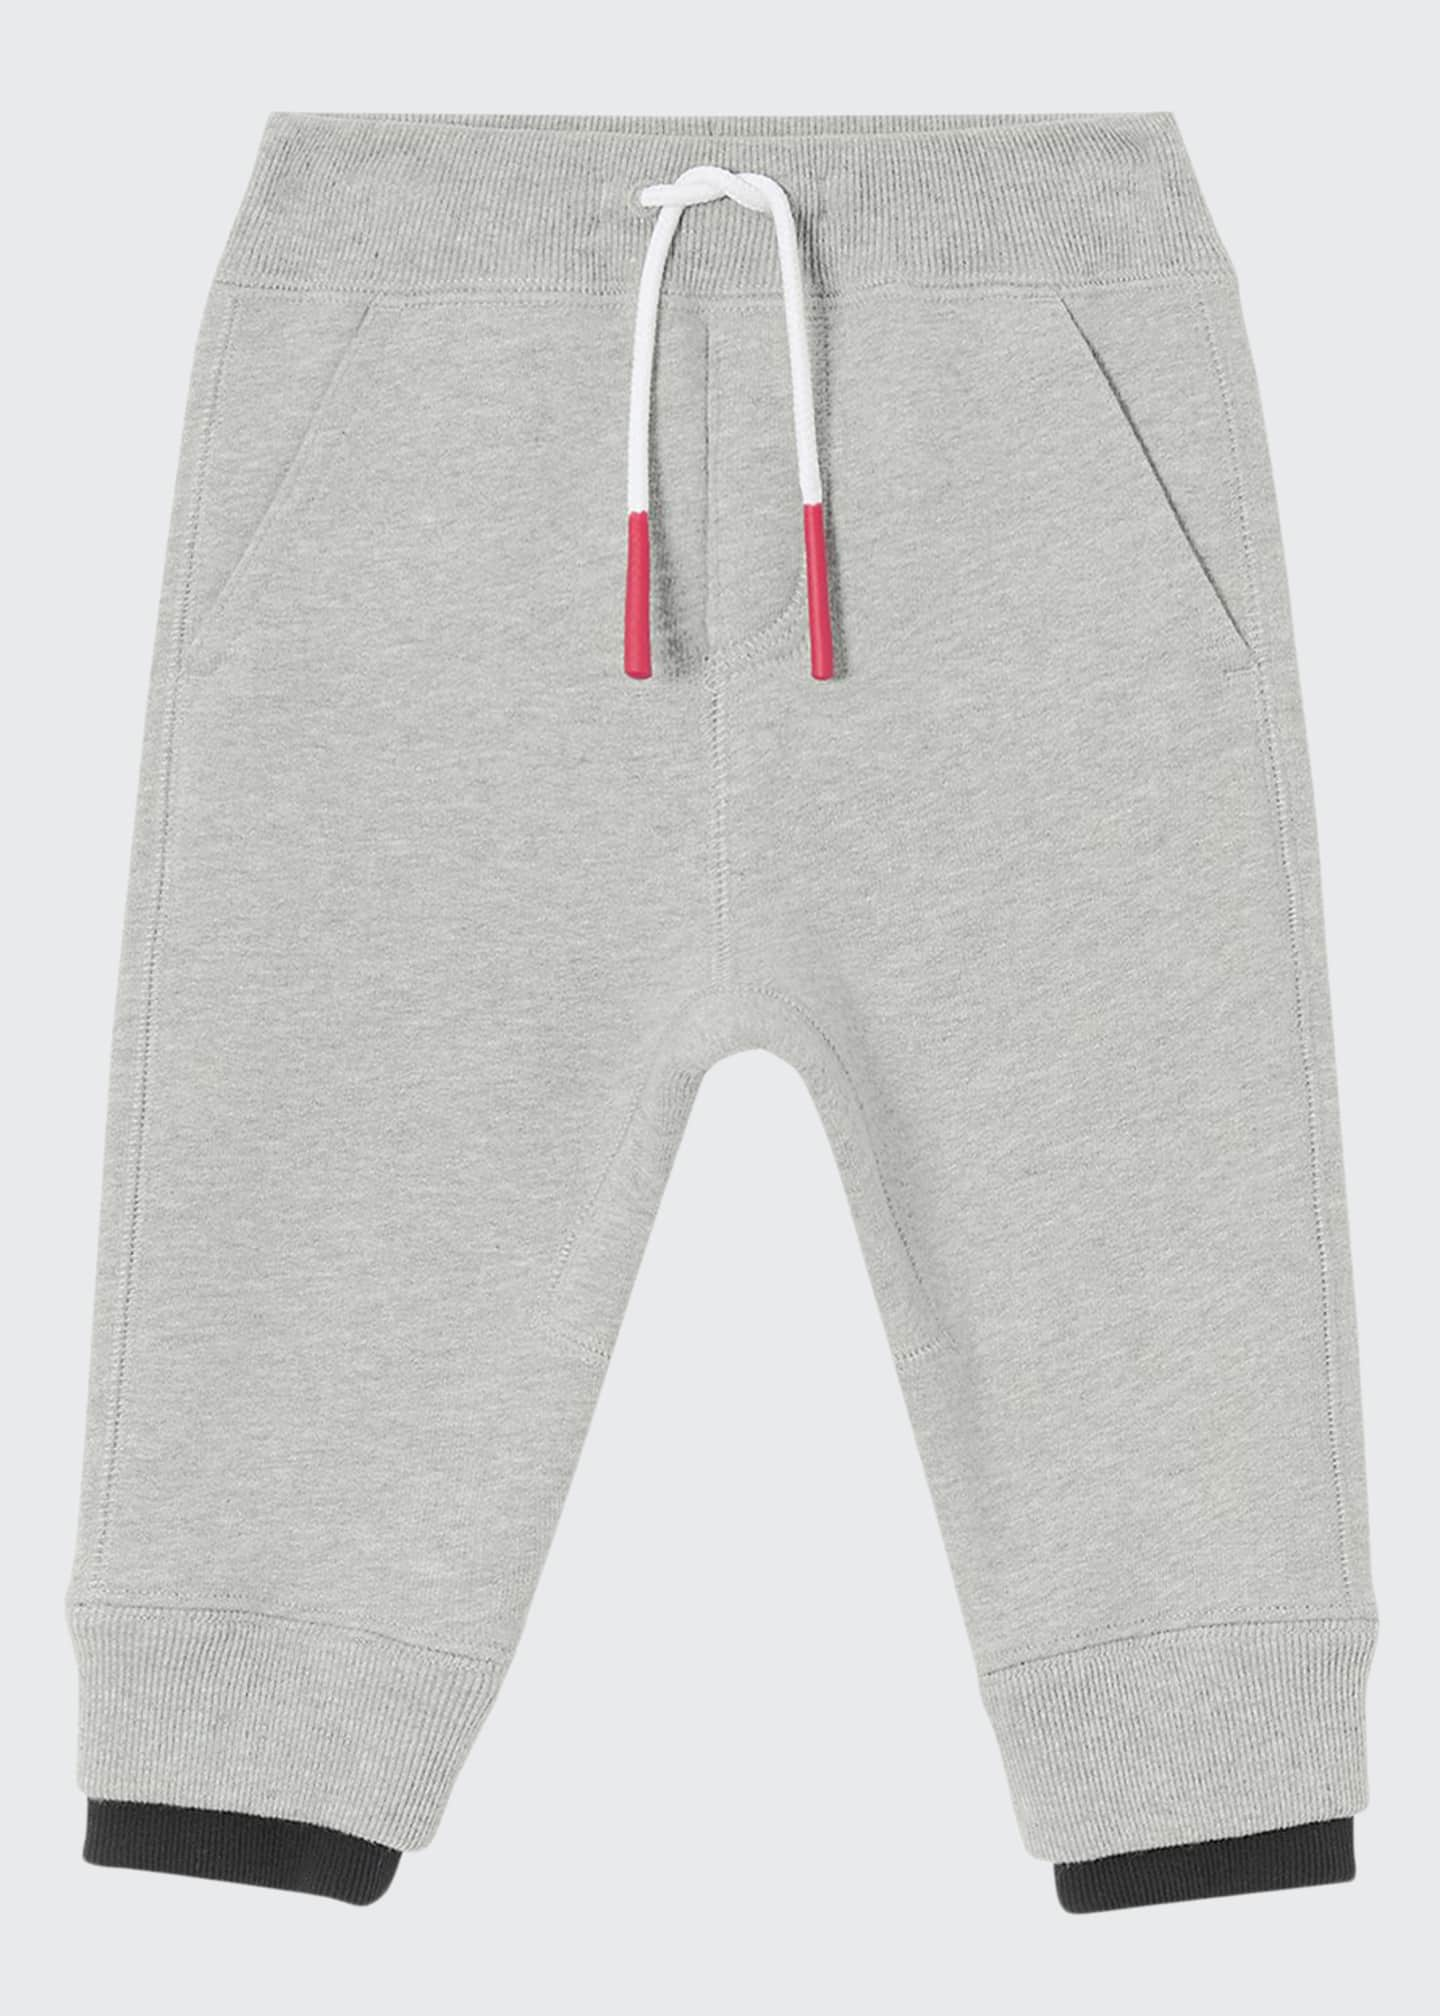 Burberry Boy's Double Ribbed Logo Patch Sweatpants, Size